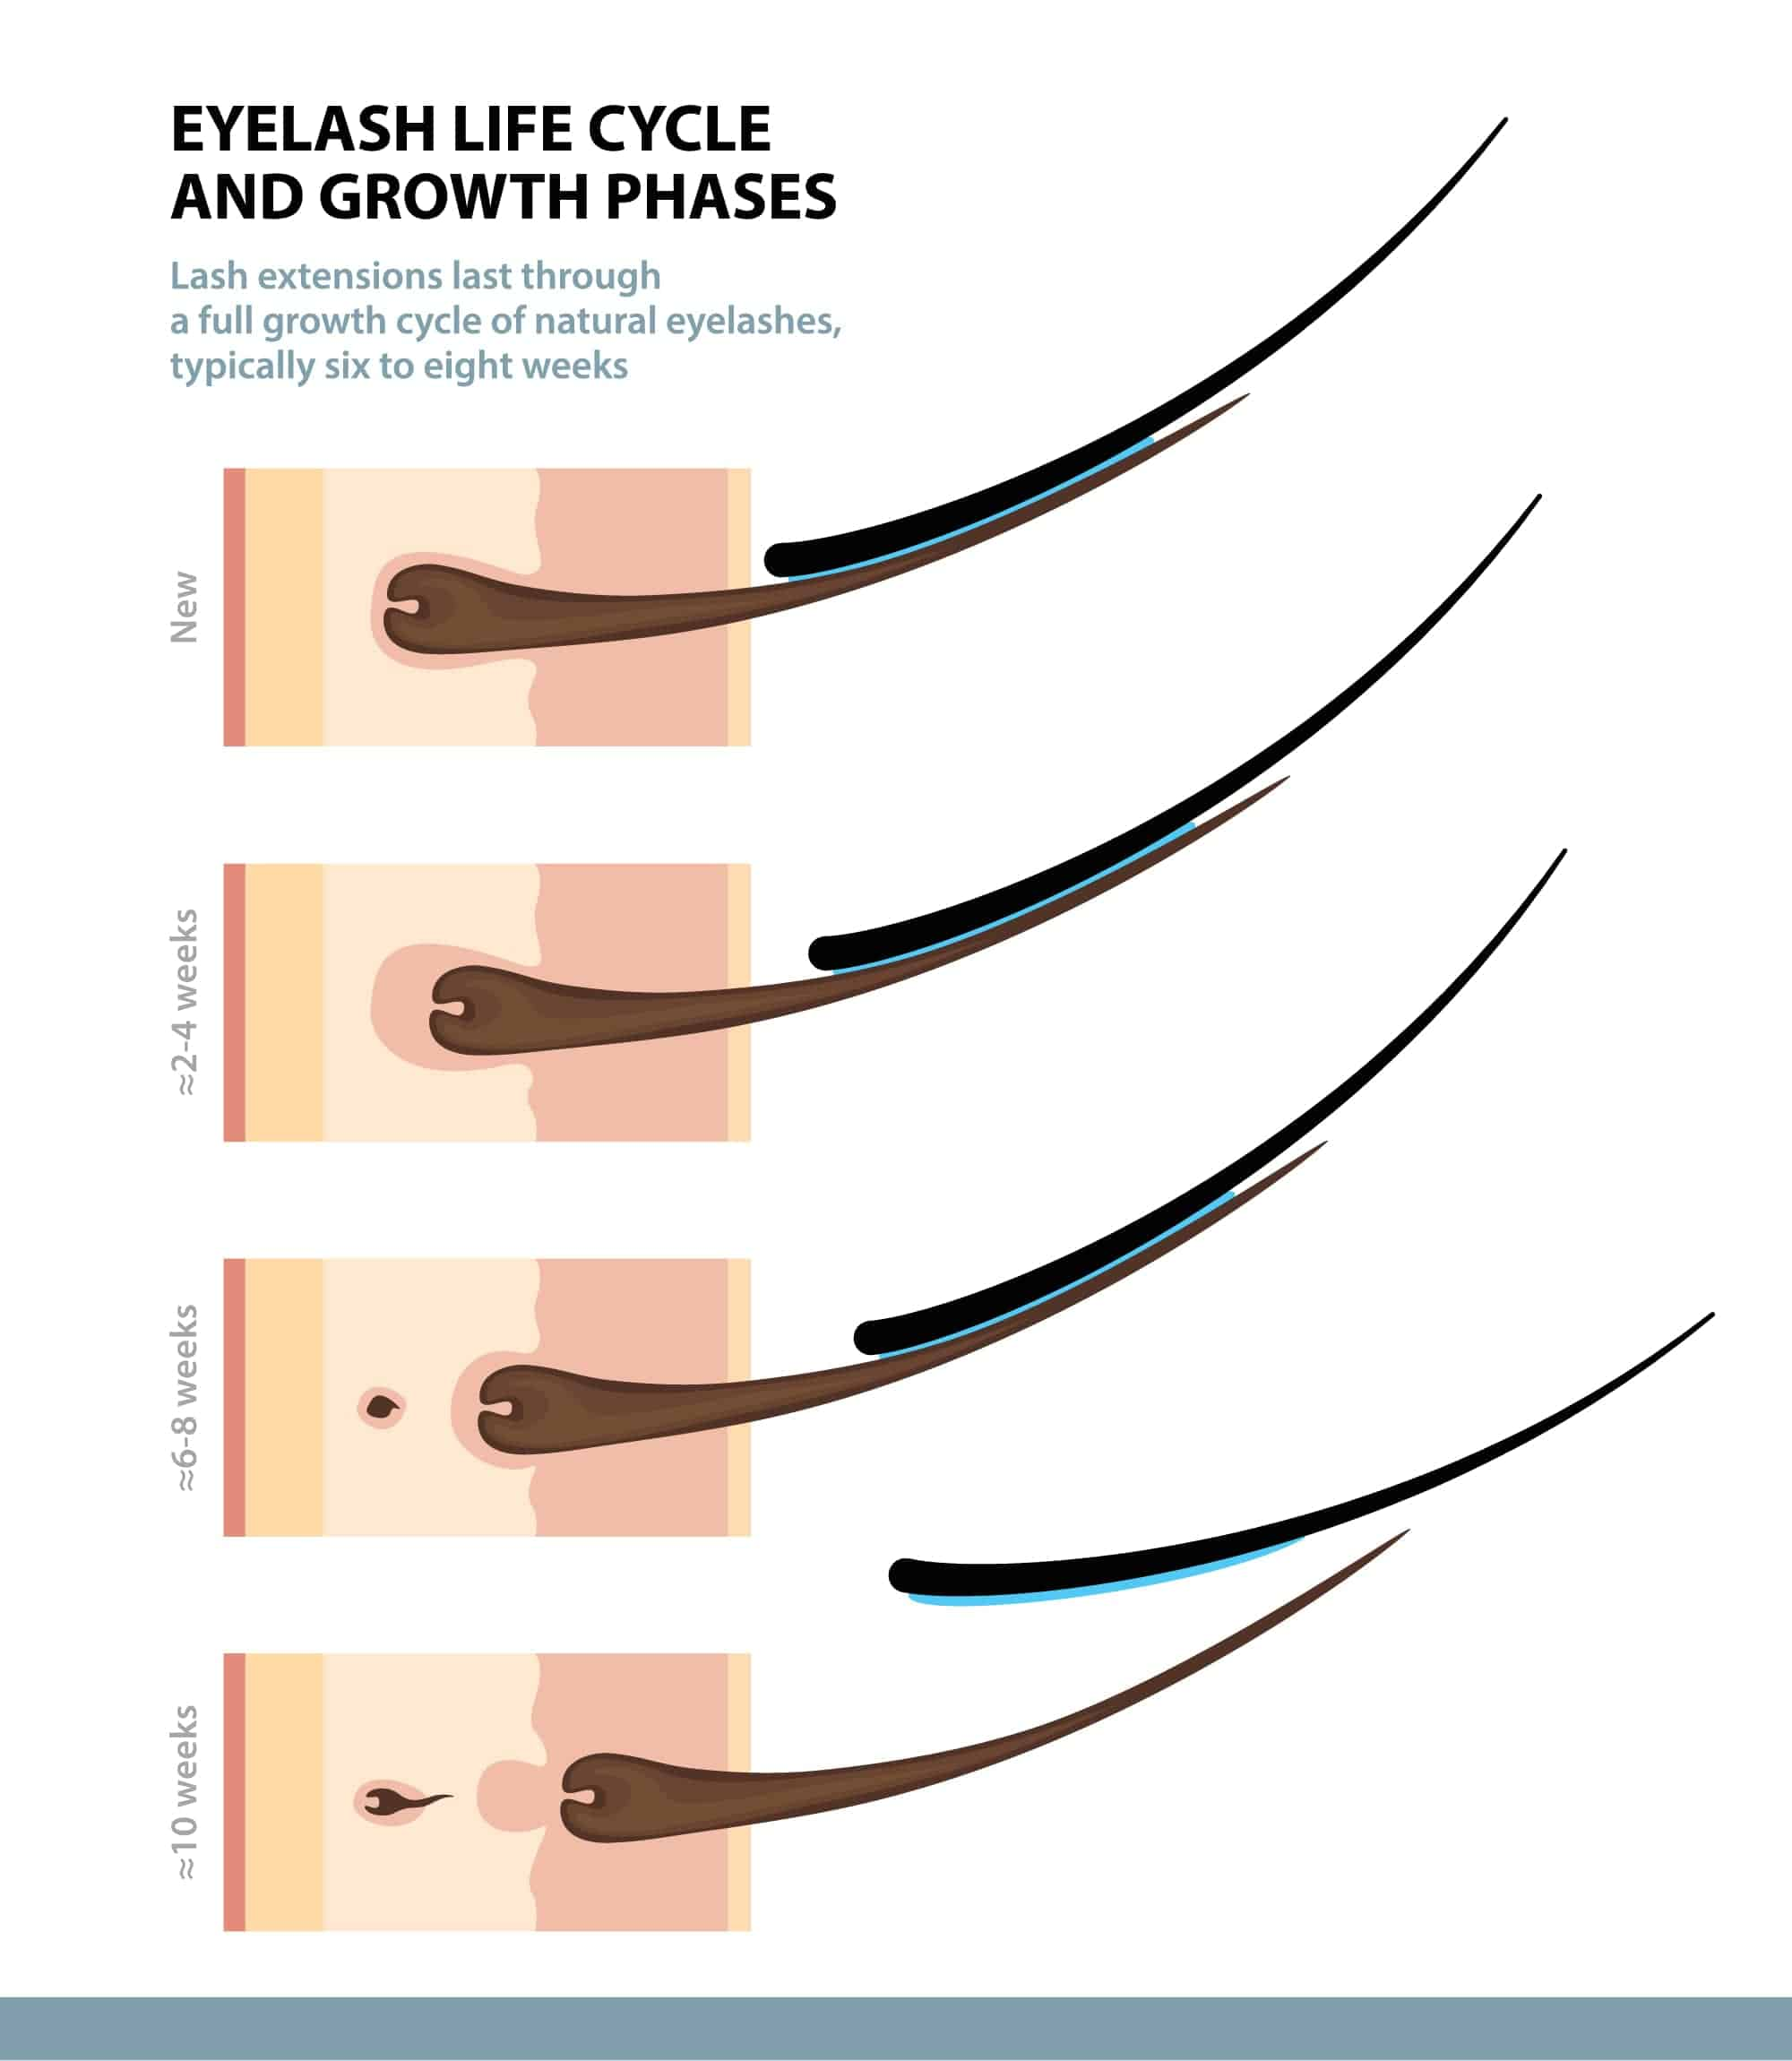 diagram shows eyelash growth phases